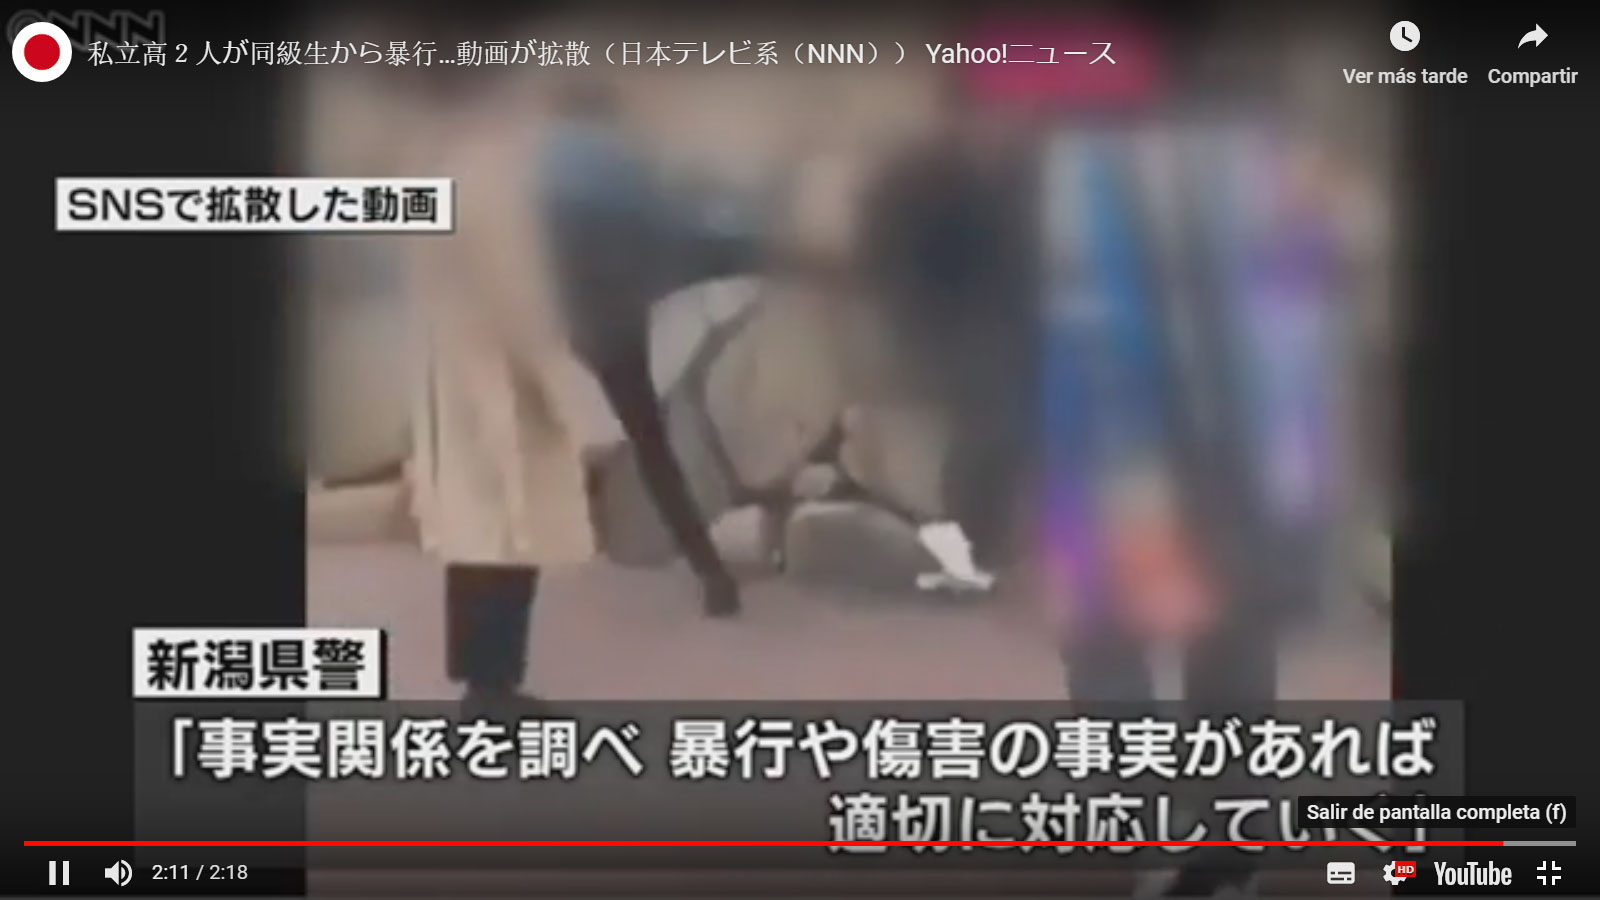 Video muestra caso de bullying en escuela de Niigata